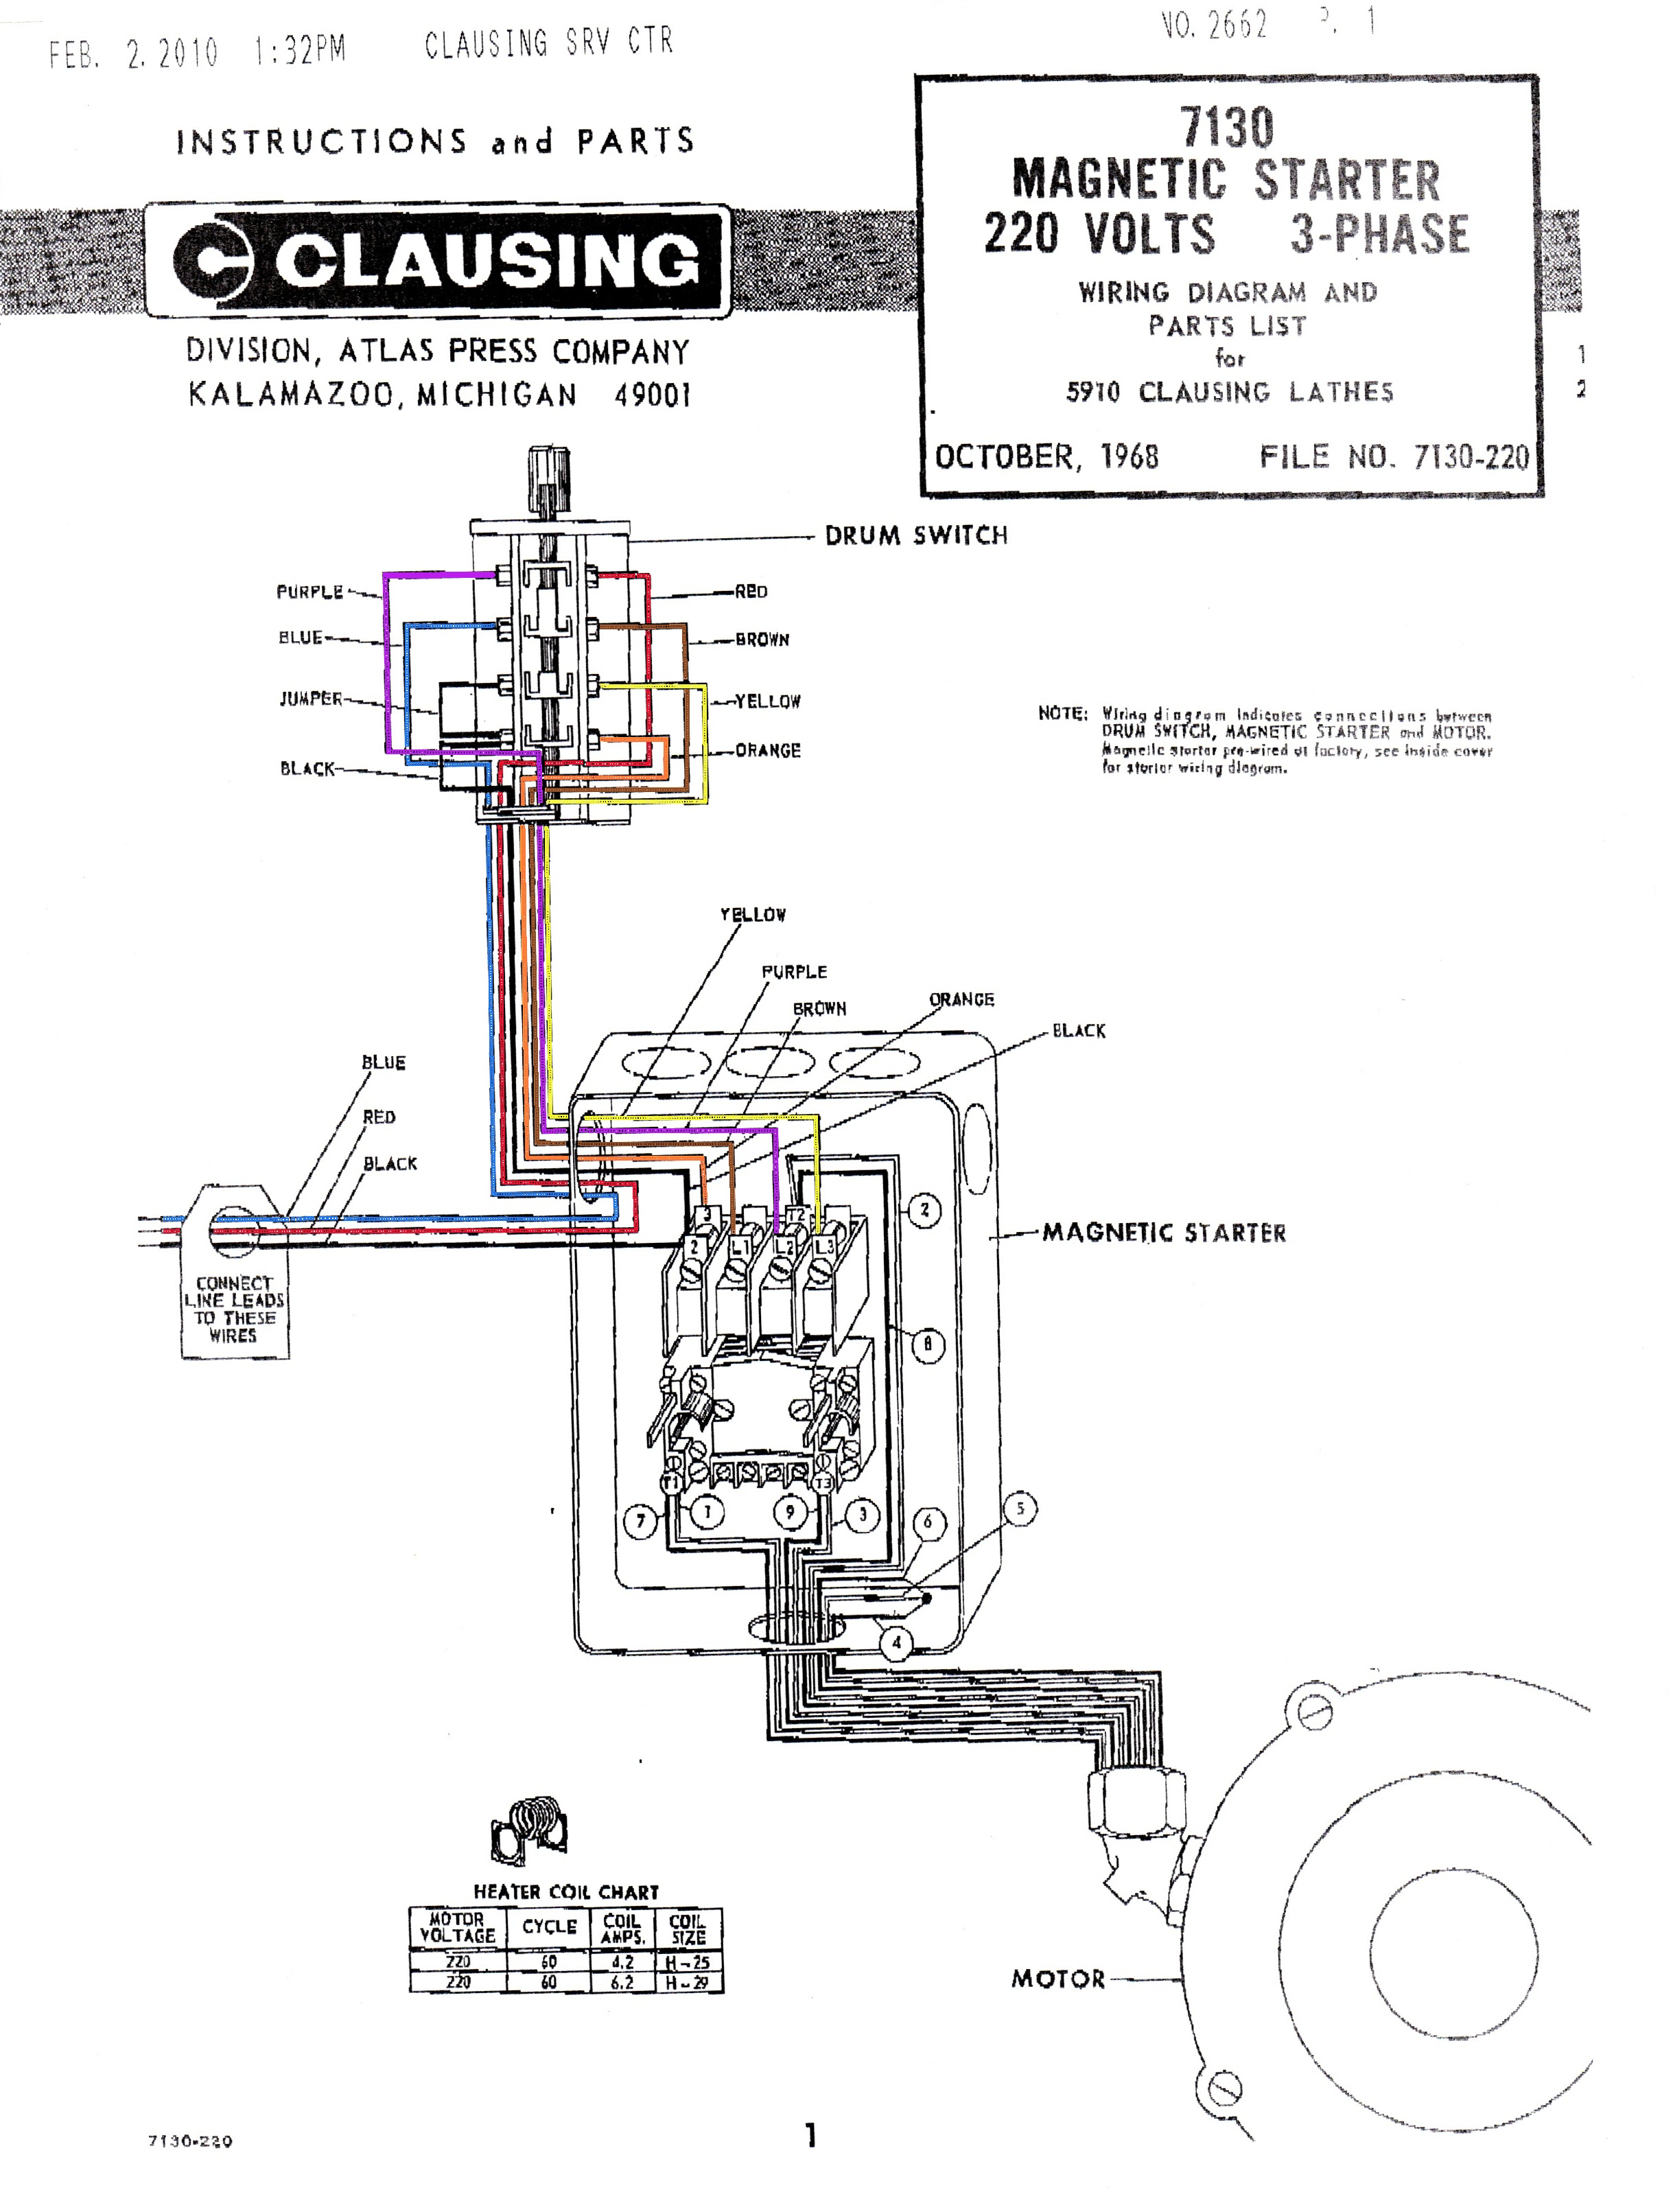 7130 Magnetic Starter Wiring Diagram Color starter wiring diagrams mag wiring diagrams instruction starter wiring diagram at pacquiaovsvargaslive.co